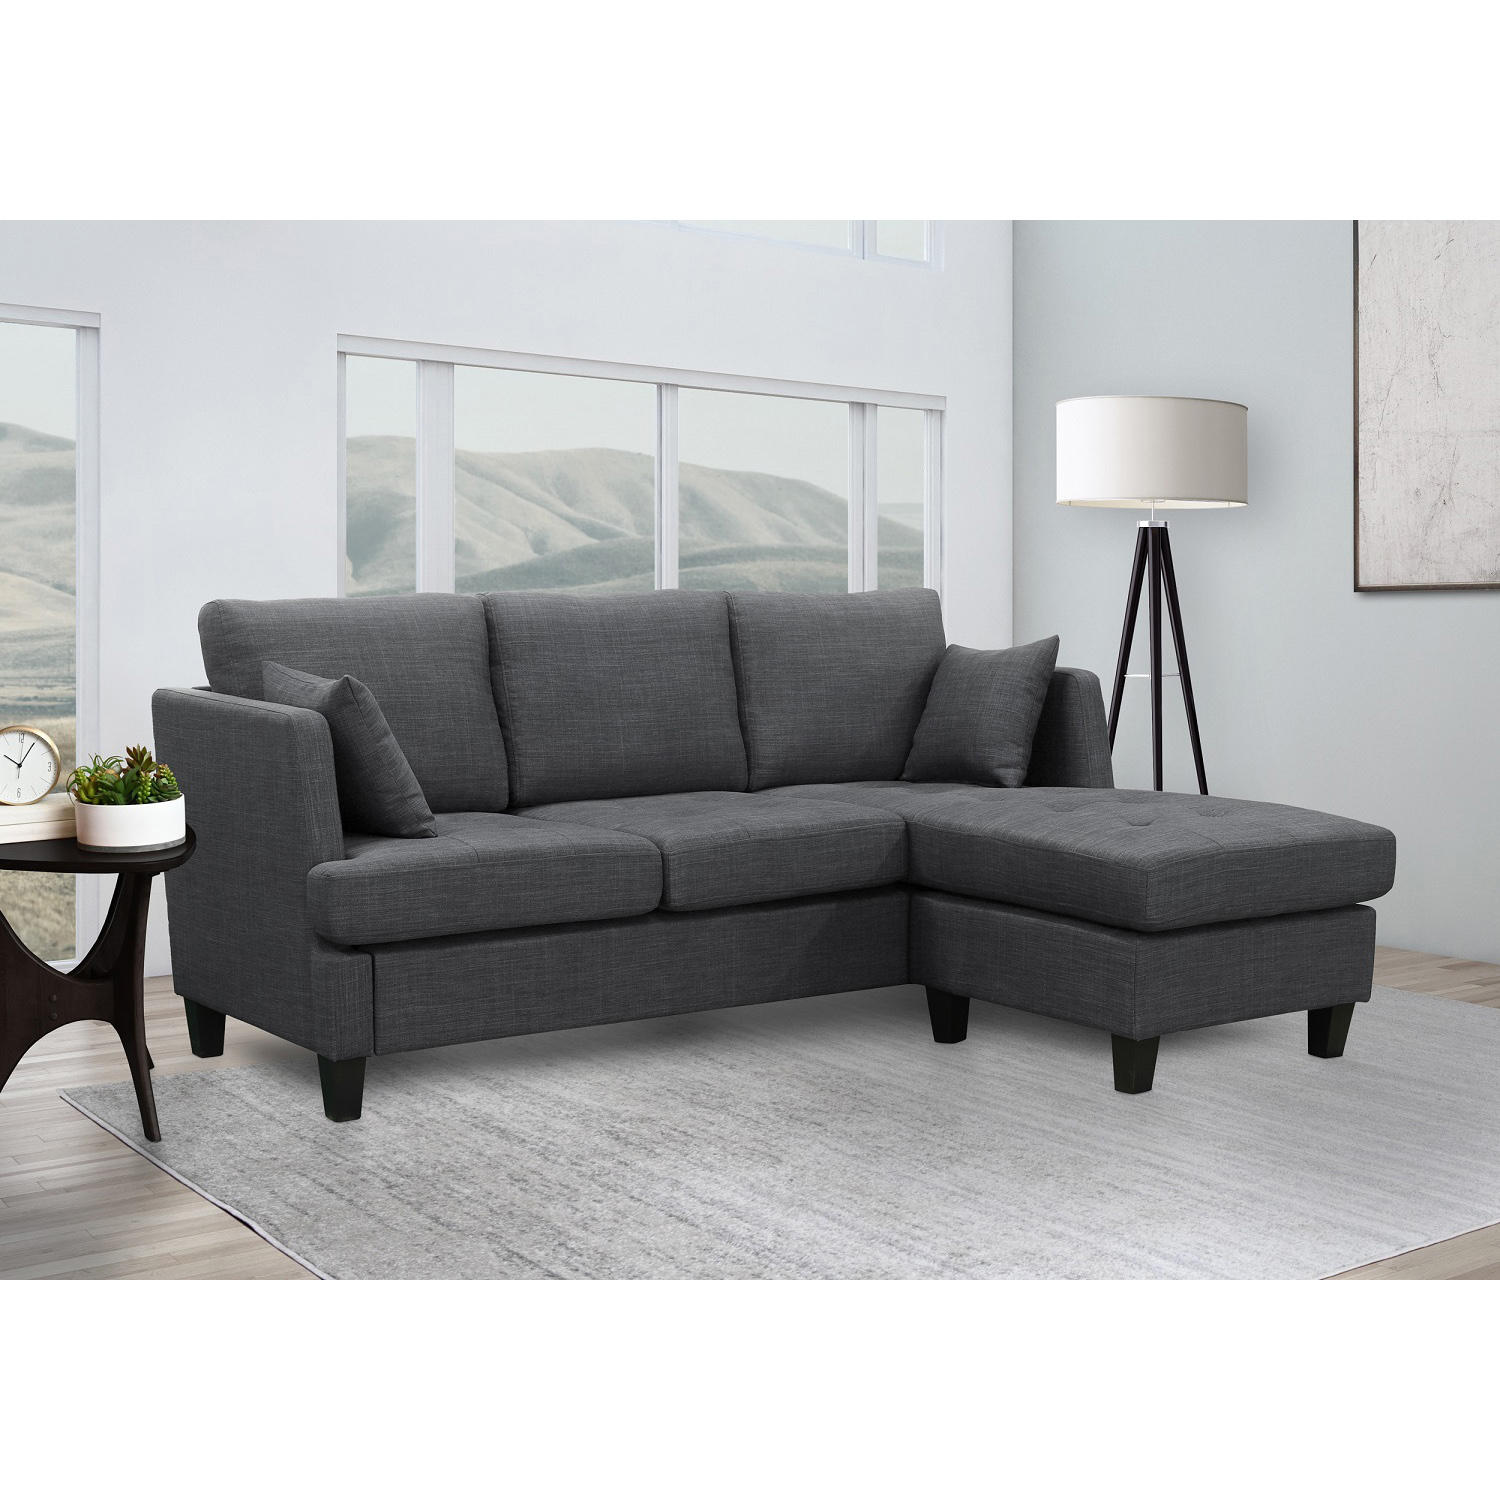 Lily Fabric Sectional Sofa